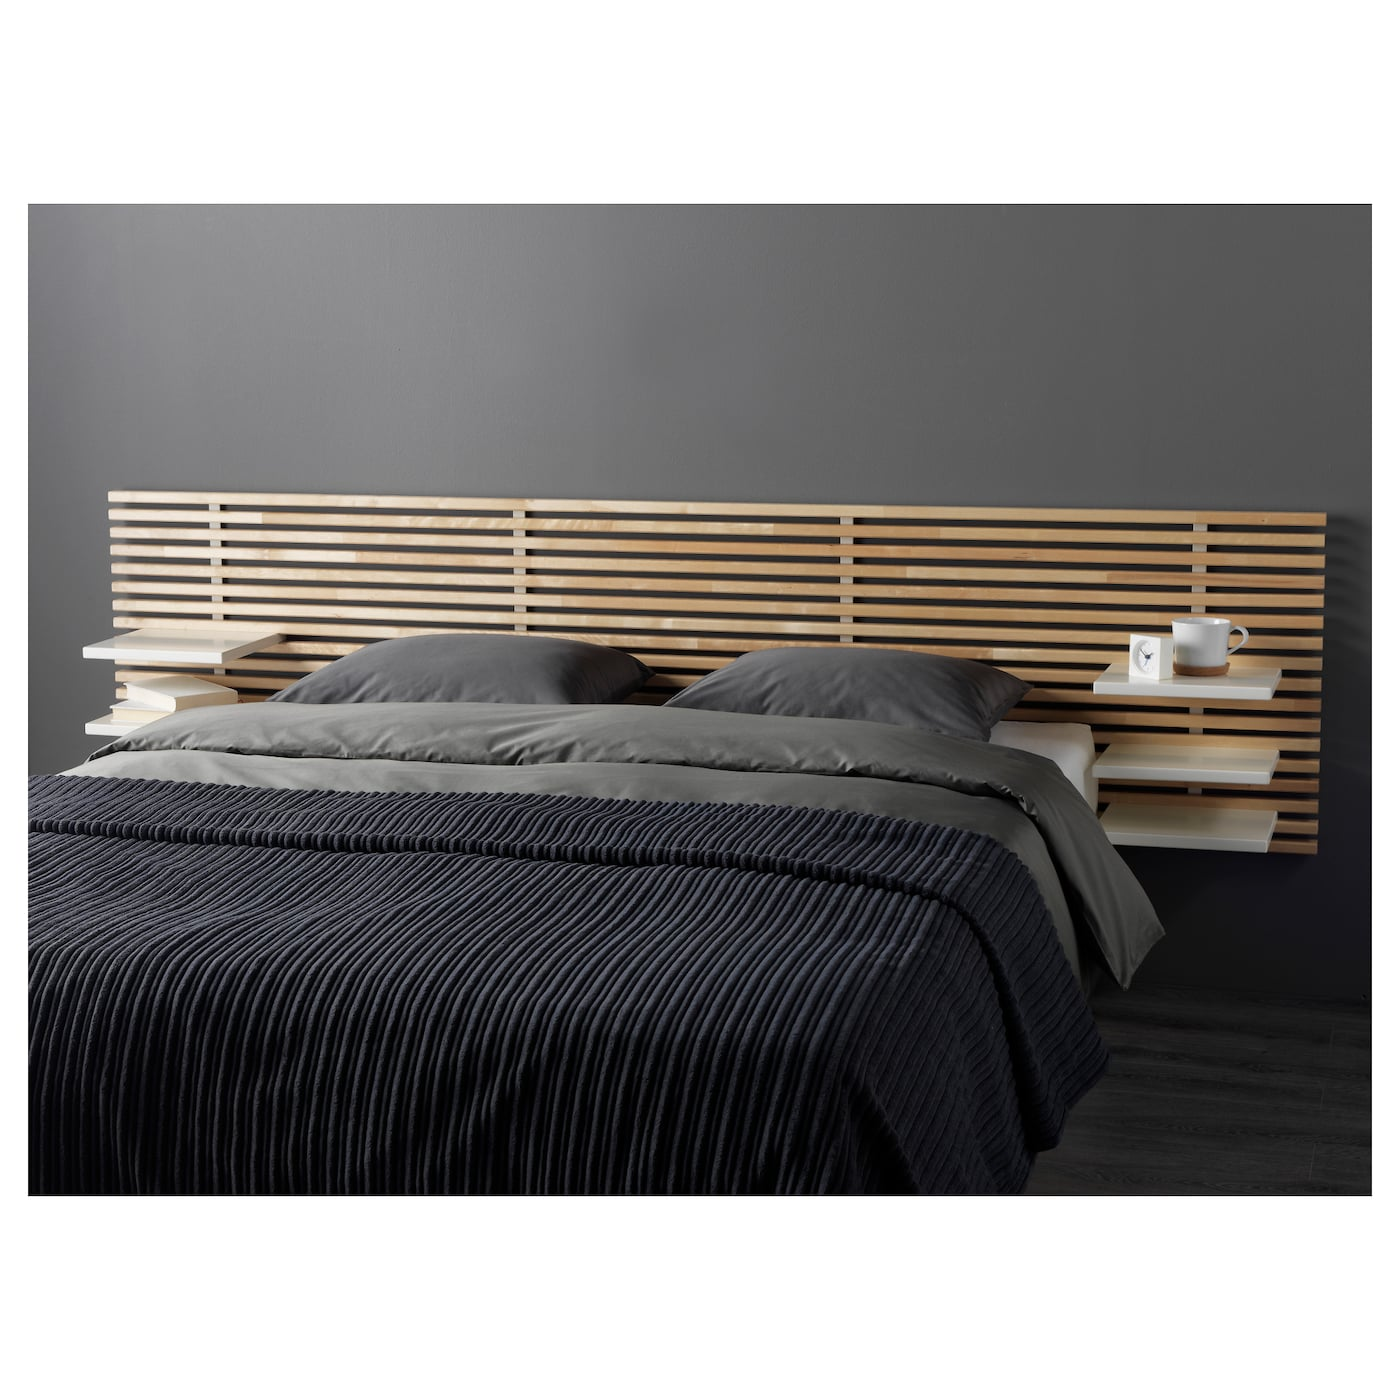 guirlande lumineuse tete de lit maison design. Black Bedroom Furniture Sets. Home Design Ideas